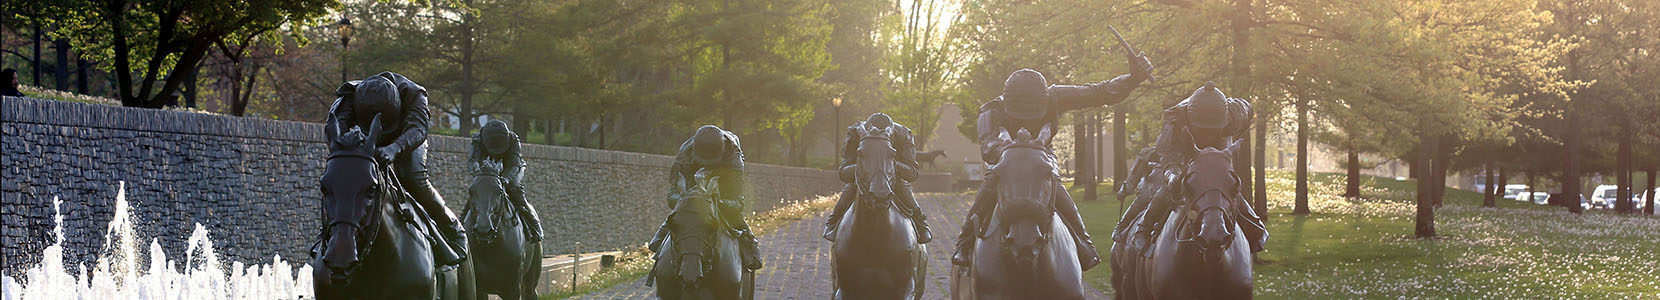 Image of Thoroughbred Park with race horse statues charging towards the viewer.